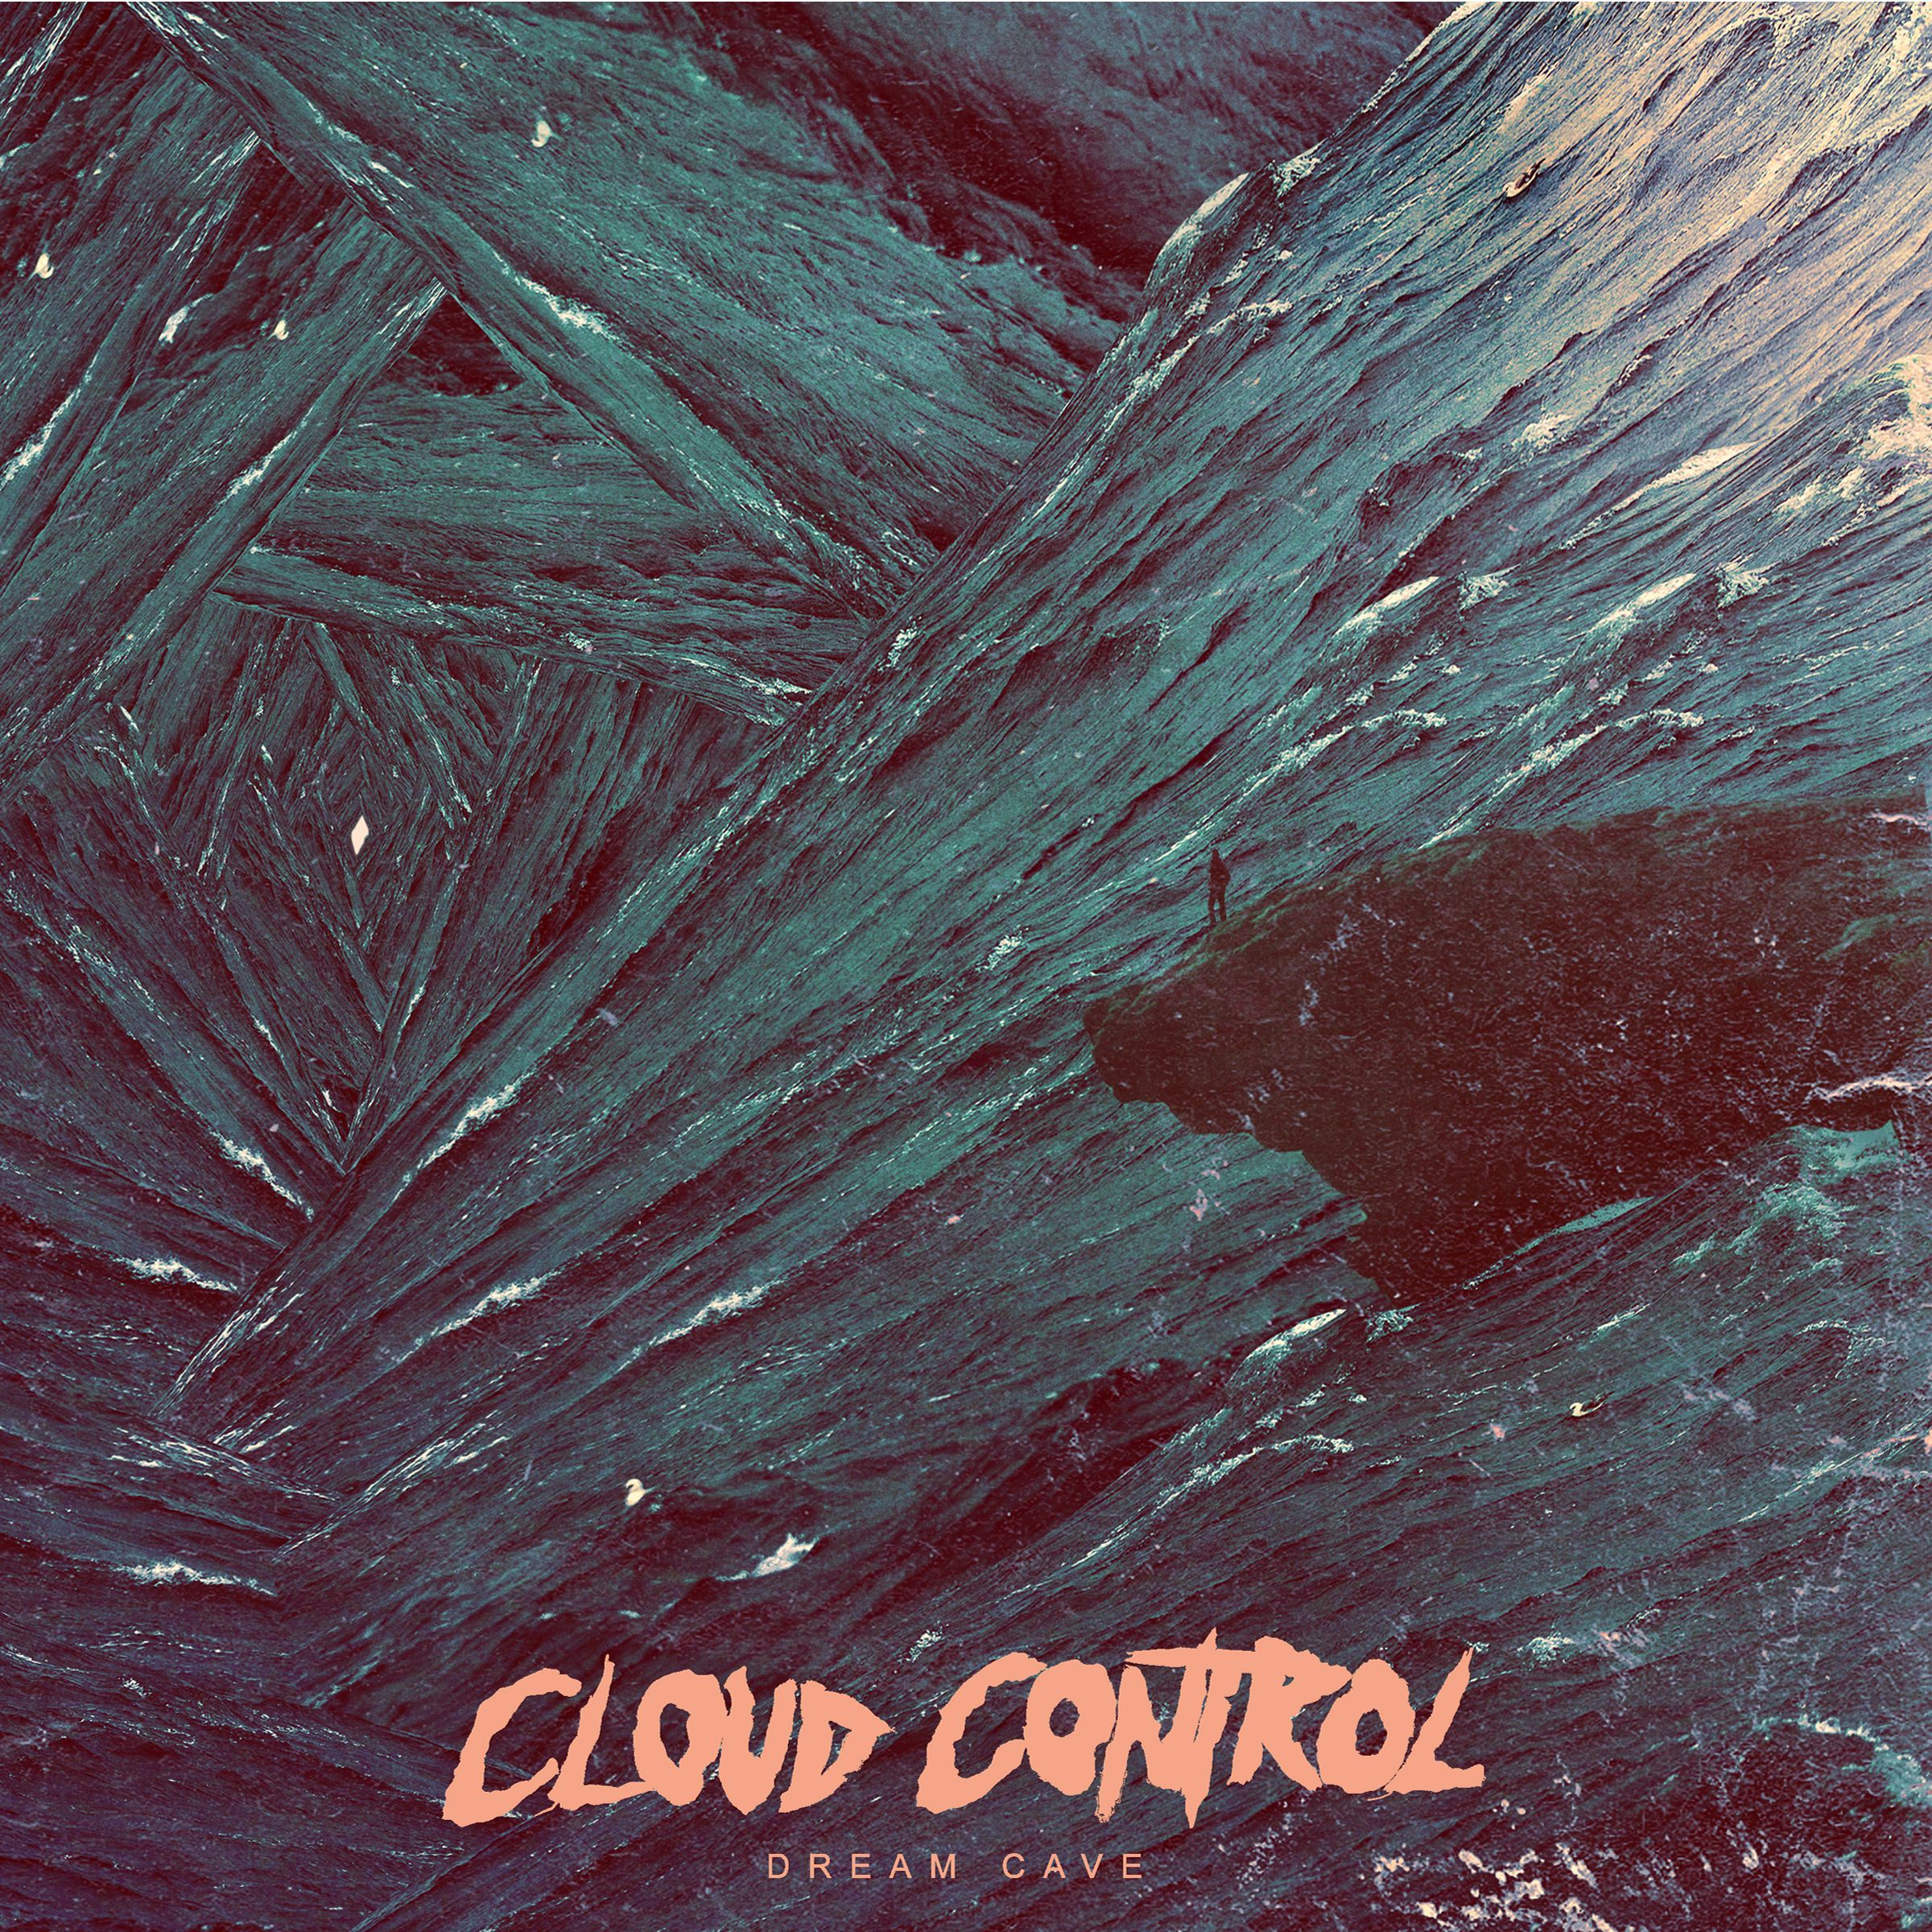 Cloud Control Dream Cave Album Cover (With images